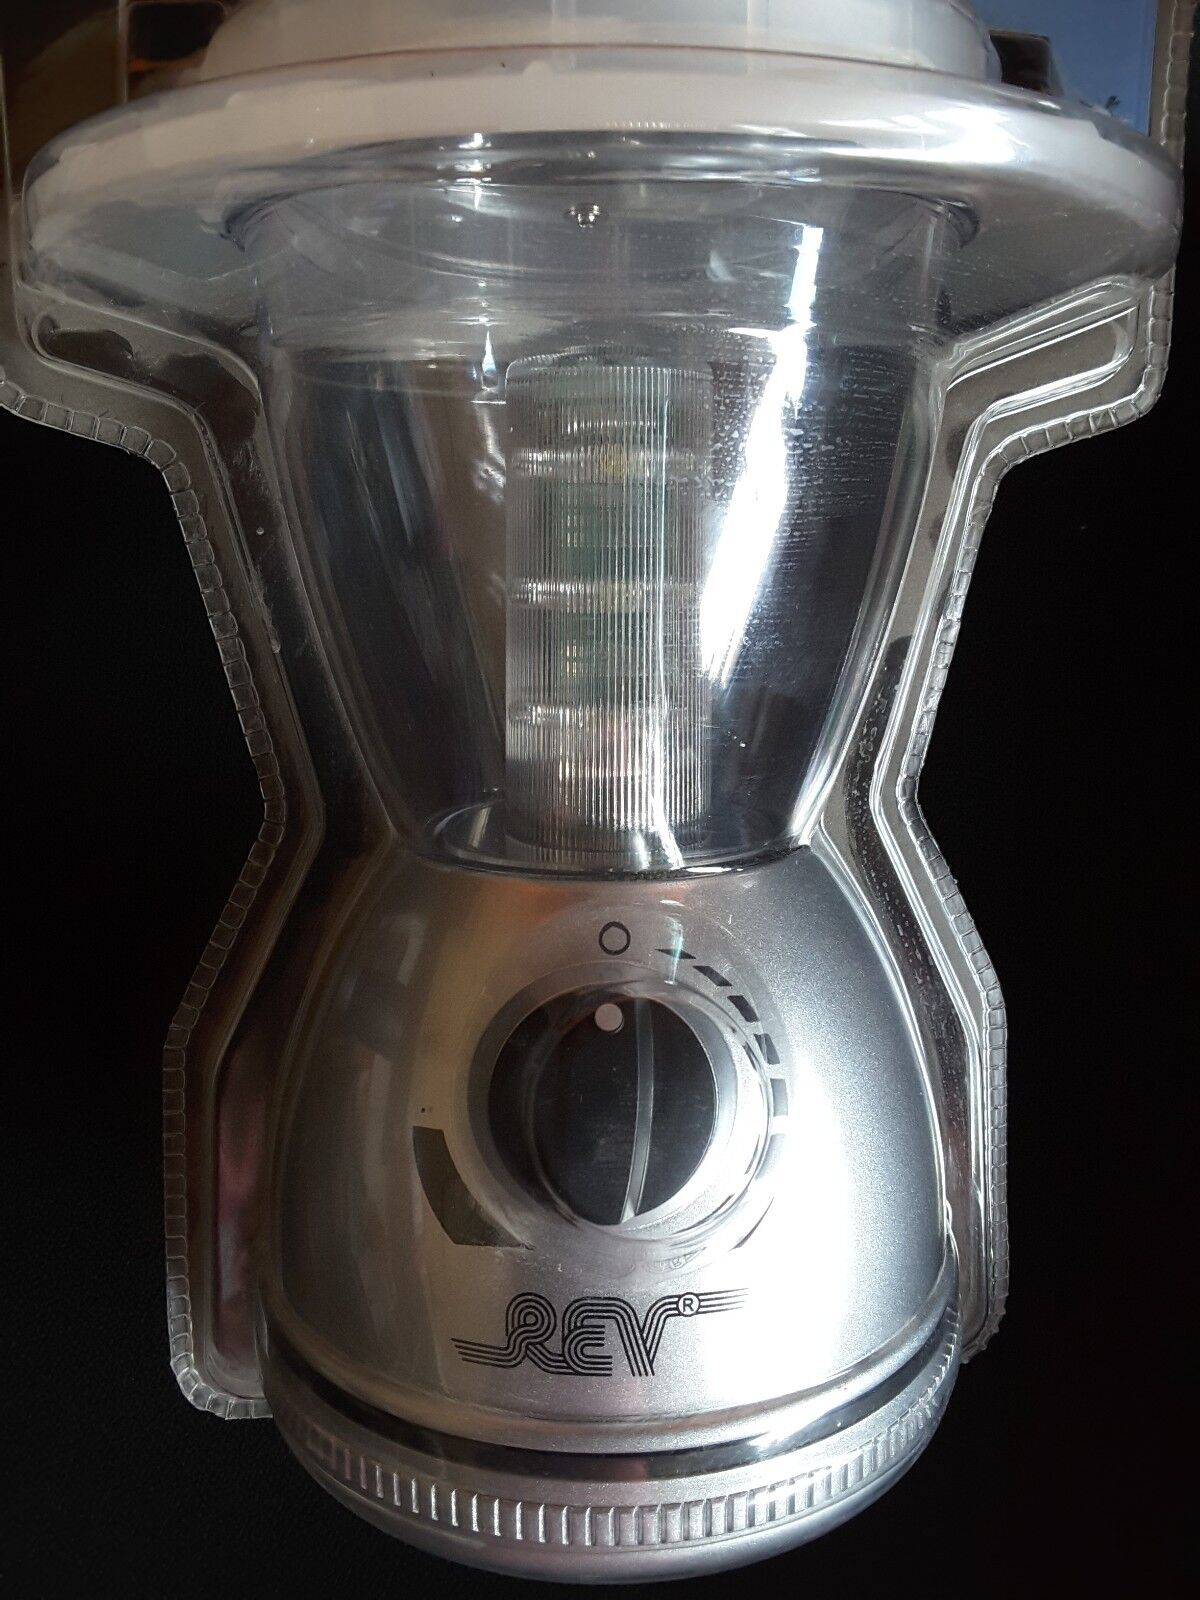 NEW REV RITTER PORTABLE CAMPING LAMP